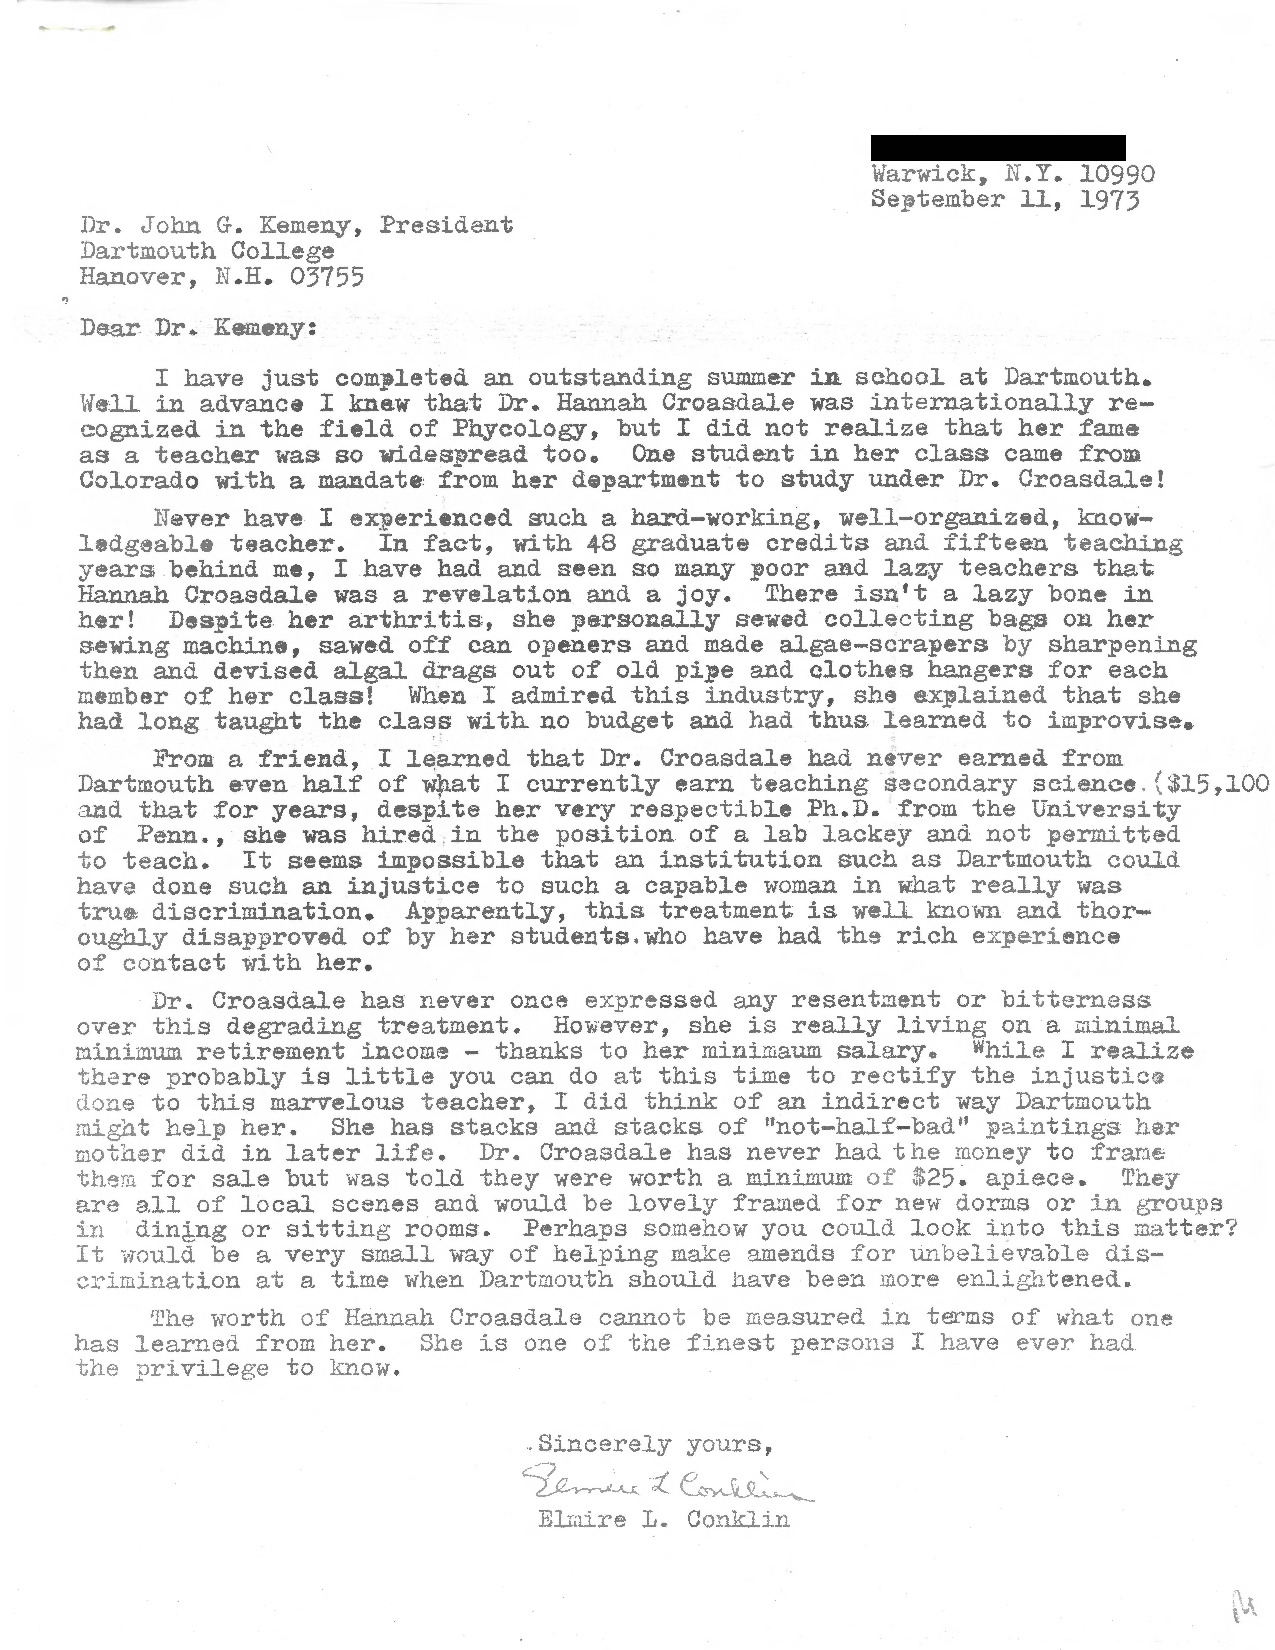 """Graduate student Elmire L. Conklin writes to President Kemeny to praise Prof. Croasdale, whose course she had just taken in the summer of 1973. Conklin alludes to Croasdale's international renown and domestic fame as an exceptional instructor, and goes on to write: """"Never have I experienced such a hard-working, well-organized, knowledgeable teacher... I have had an seen so many poor and lazy teachers that Hannah Croasdale was a revelation and a joy."""" She concludes her letter with remarks about Croasdale's poor compensation and """"degrading treatment"""" while at Dartmouth."""